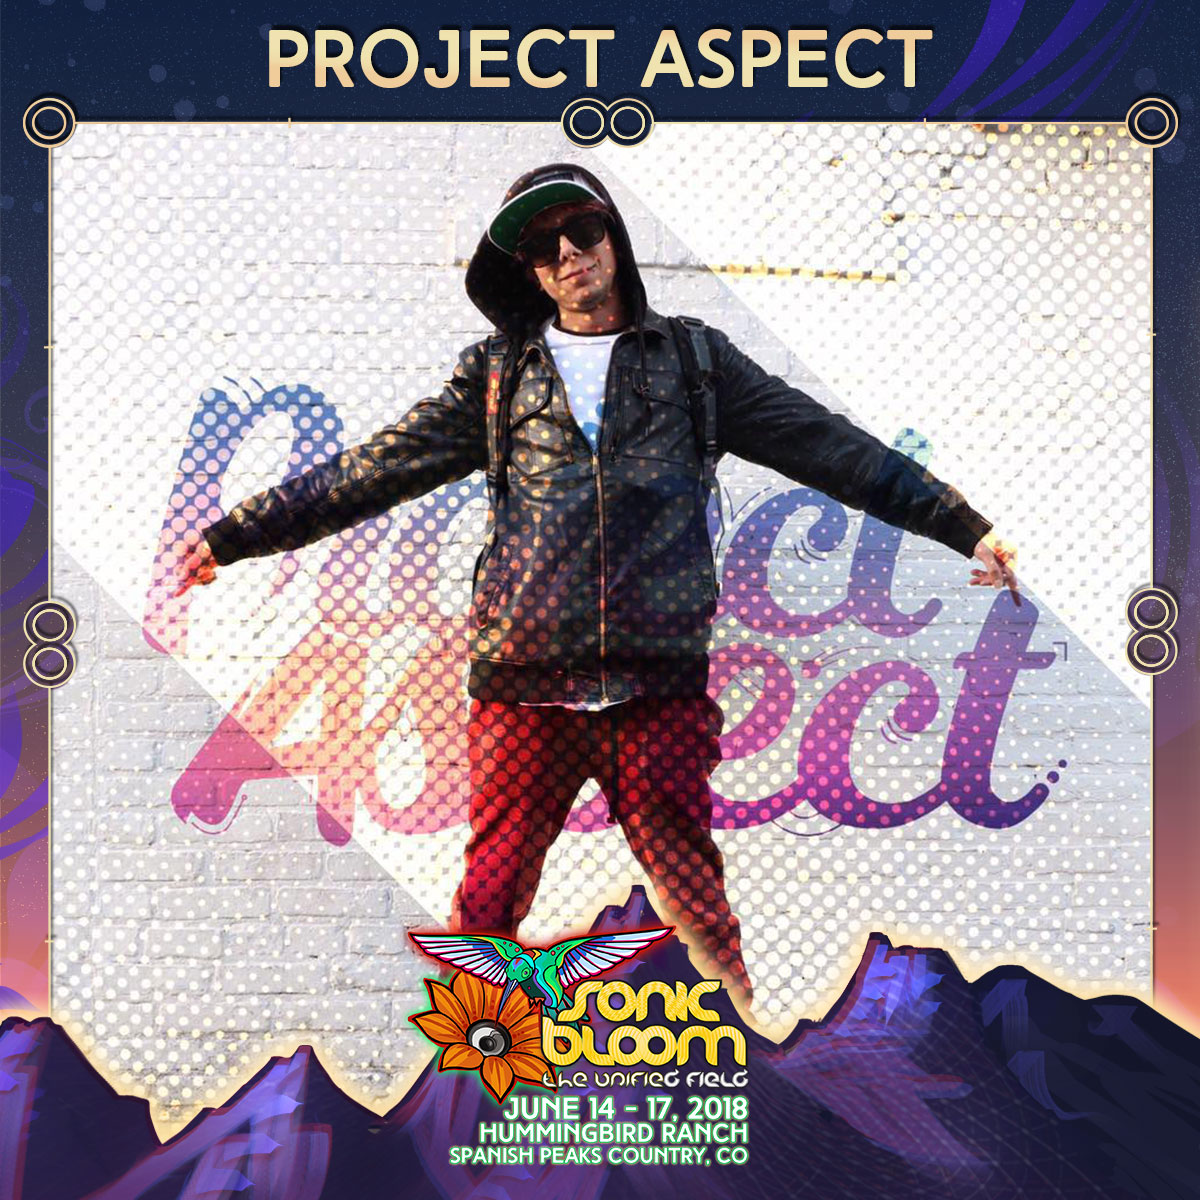 Project Aspect Sonic Bloom